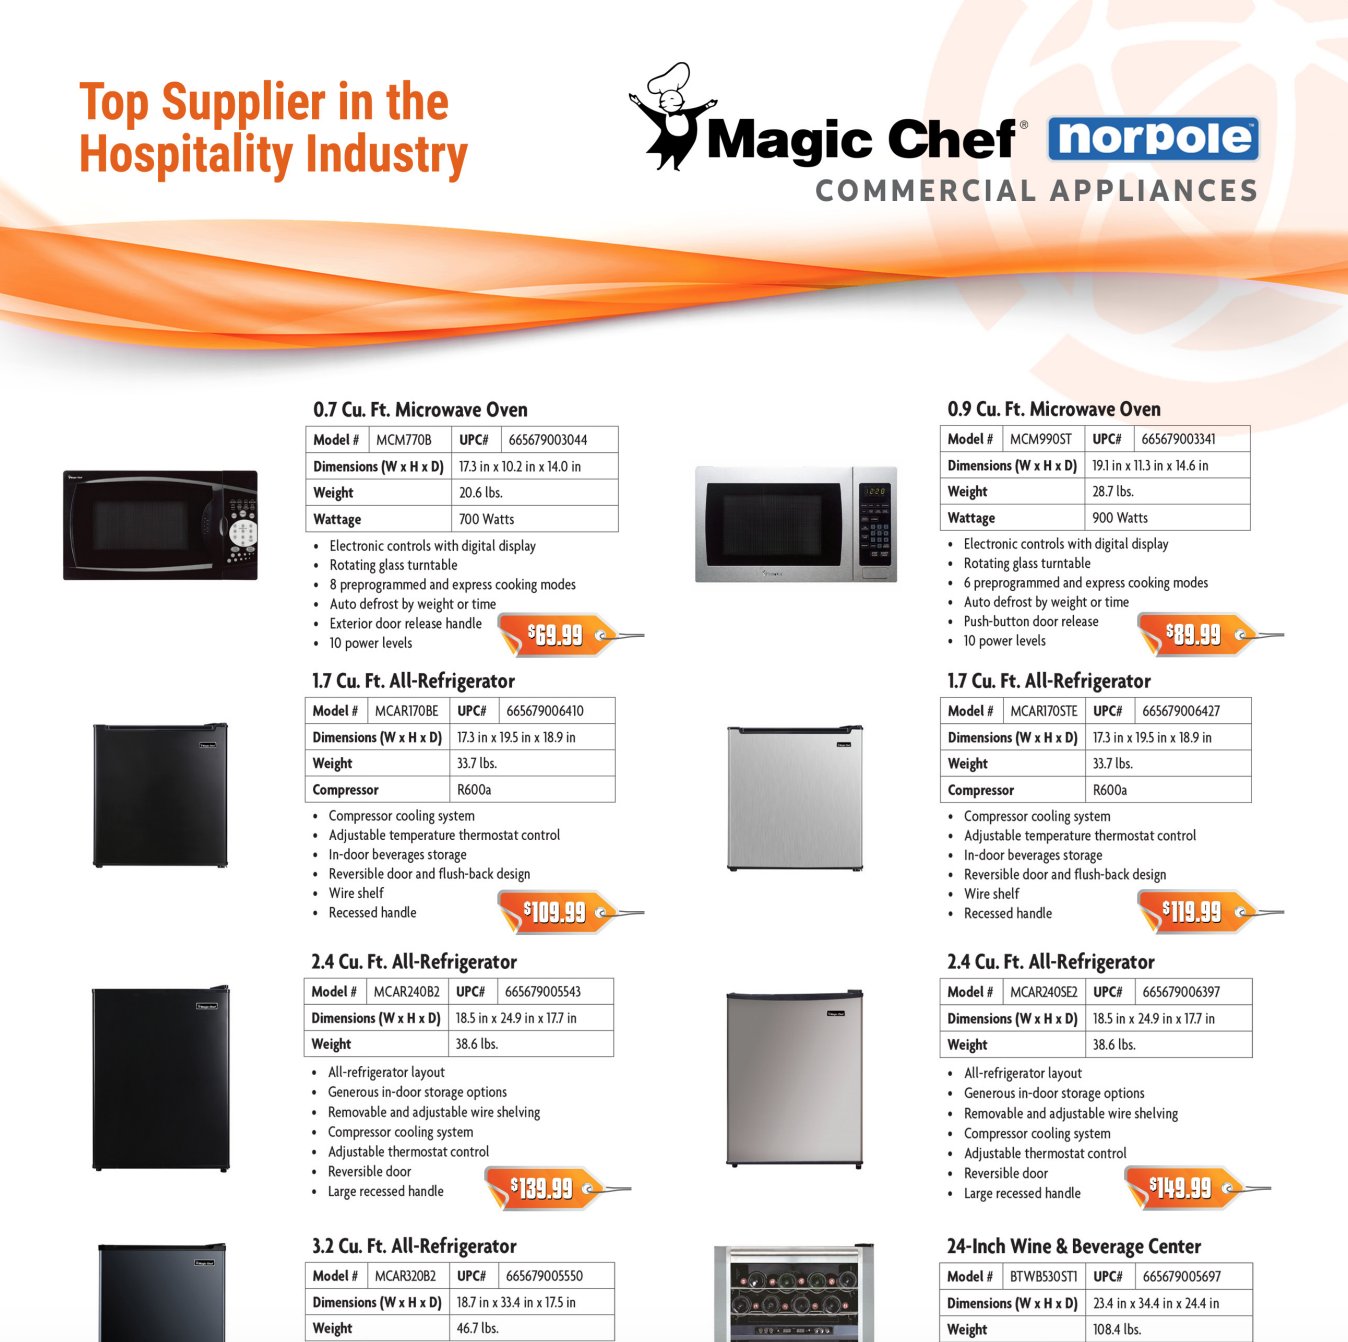 Top Supplier in the Hospitality Industry